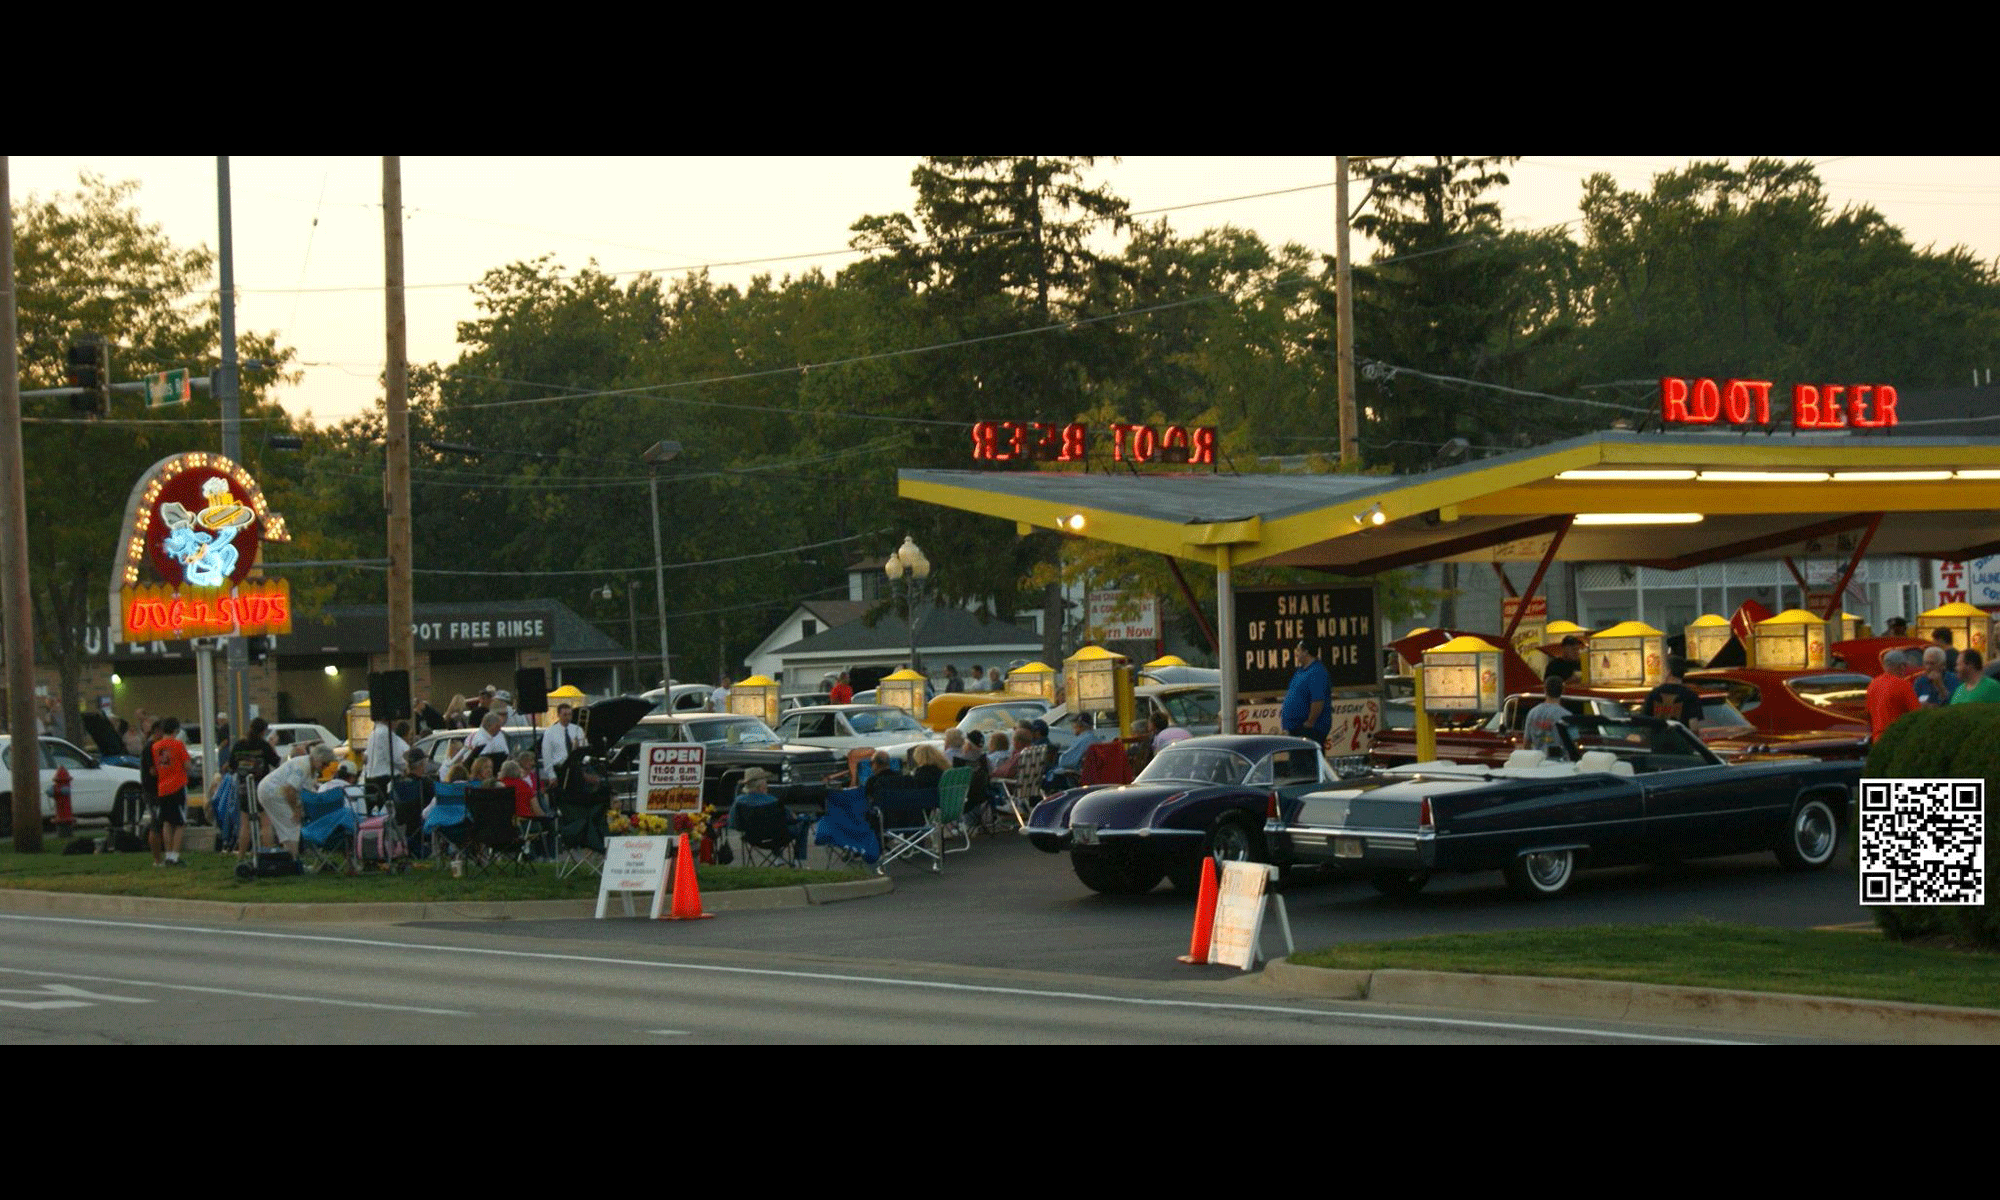 Dog N Suds Drive-In Grayslake